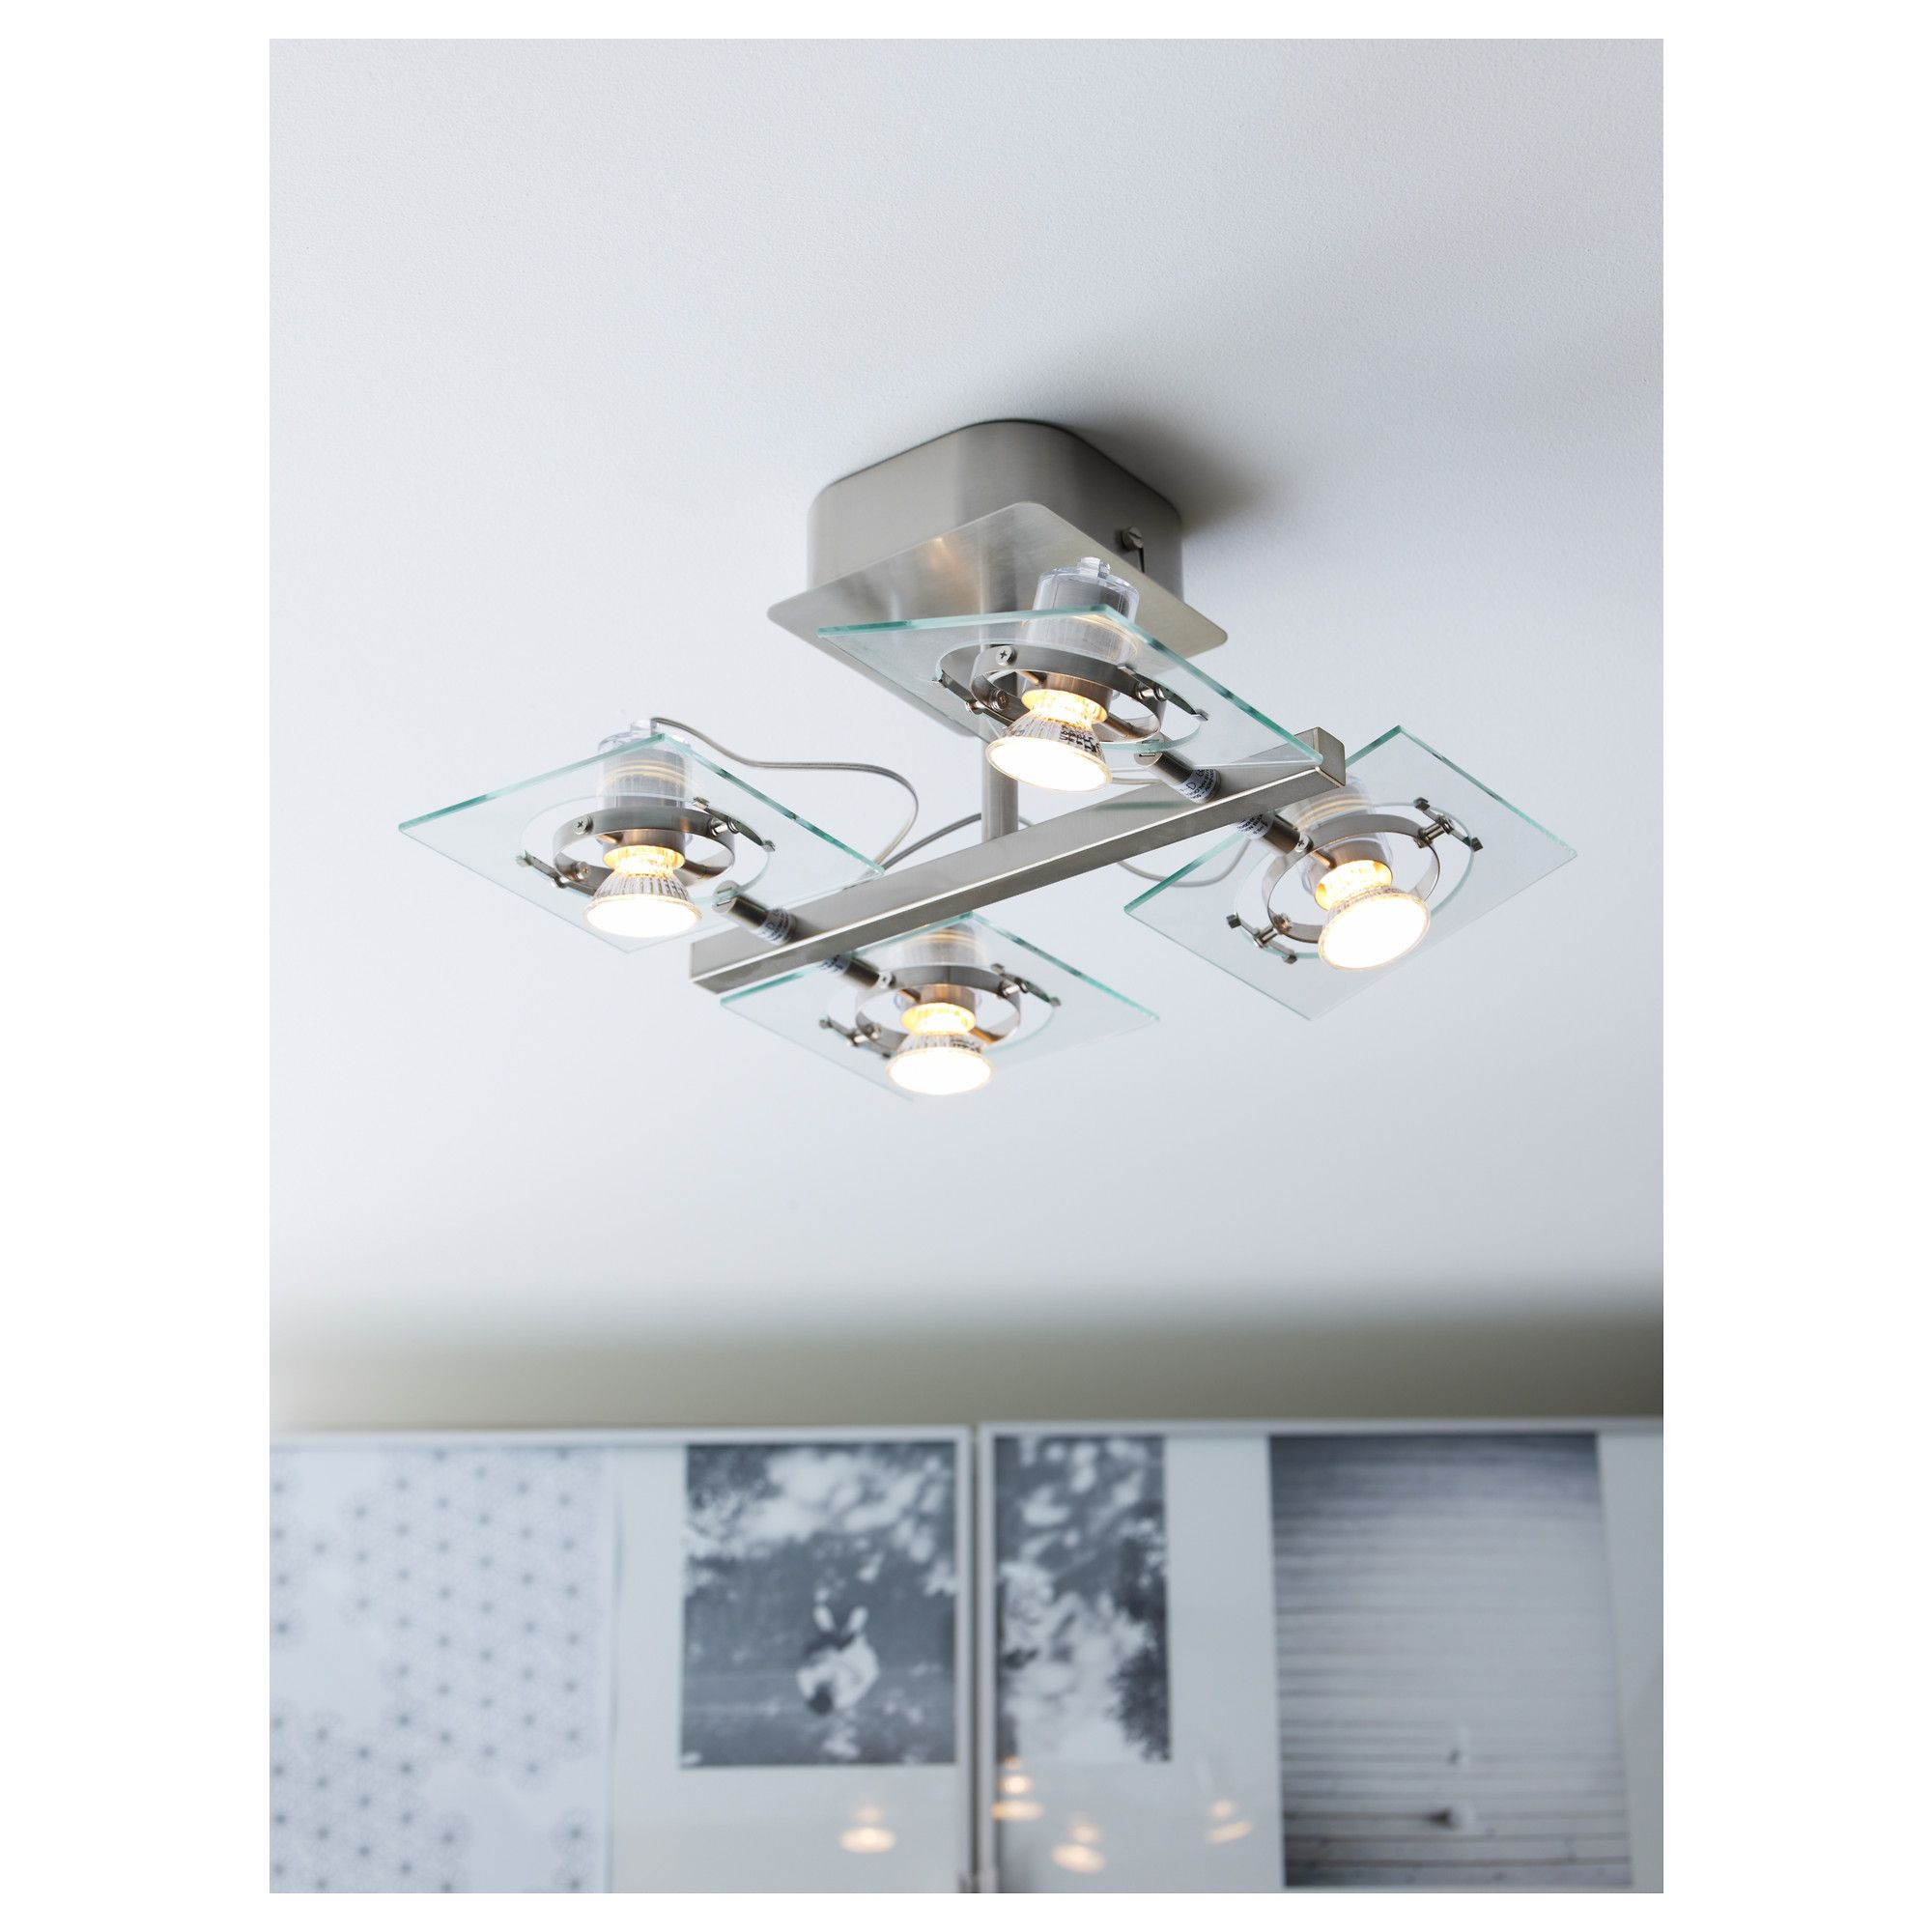 fuga ceiling spotlight with 4 spots glass